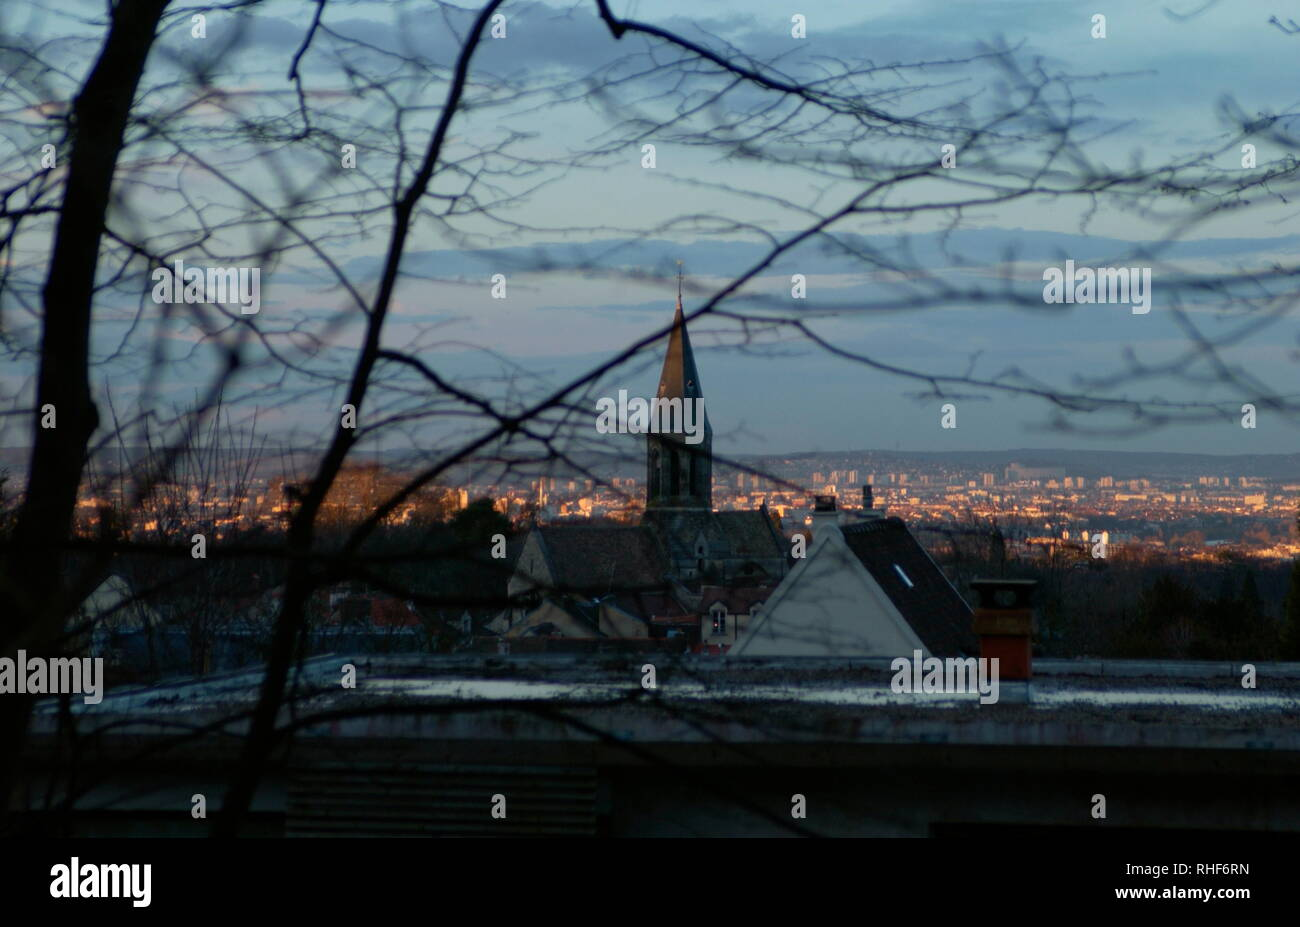 AJAXNETPHOTO. 2006. LOUVECIENNES,FRANCE. - VILLAGE CENTRE - LOOKING NORTH BY NORTH WEST TOWARD THE VILLAGE CHURCH -  EGLISE SAINT-MARTIN - AND BEYOND TO CROISSY SUR SEINE AND LE VESINET LIT BY THE SETTING SUN, FROM NEAR THE TOP OF RUE DU MARECHAL JOFFRE. A SCENE VIEWED BY 19TH CENTURY IMPRESSIONIST ARTISTS WHO LIVED IN AND VISITED THE AREA. PHOTO:JONATHAN EASTLAND/AJAX REF:D62903 776 Stock Photo